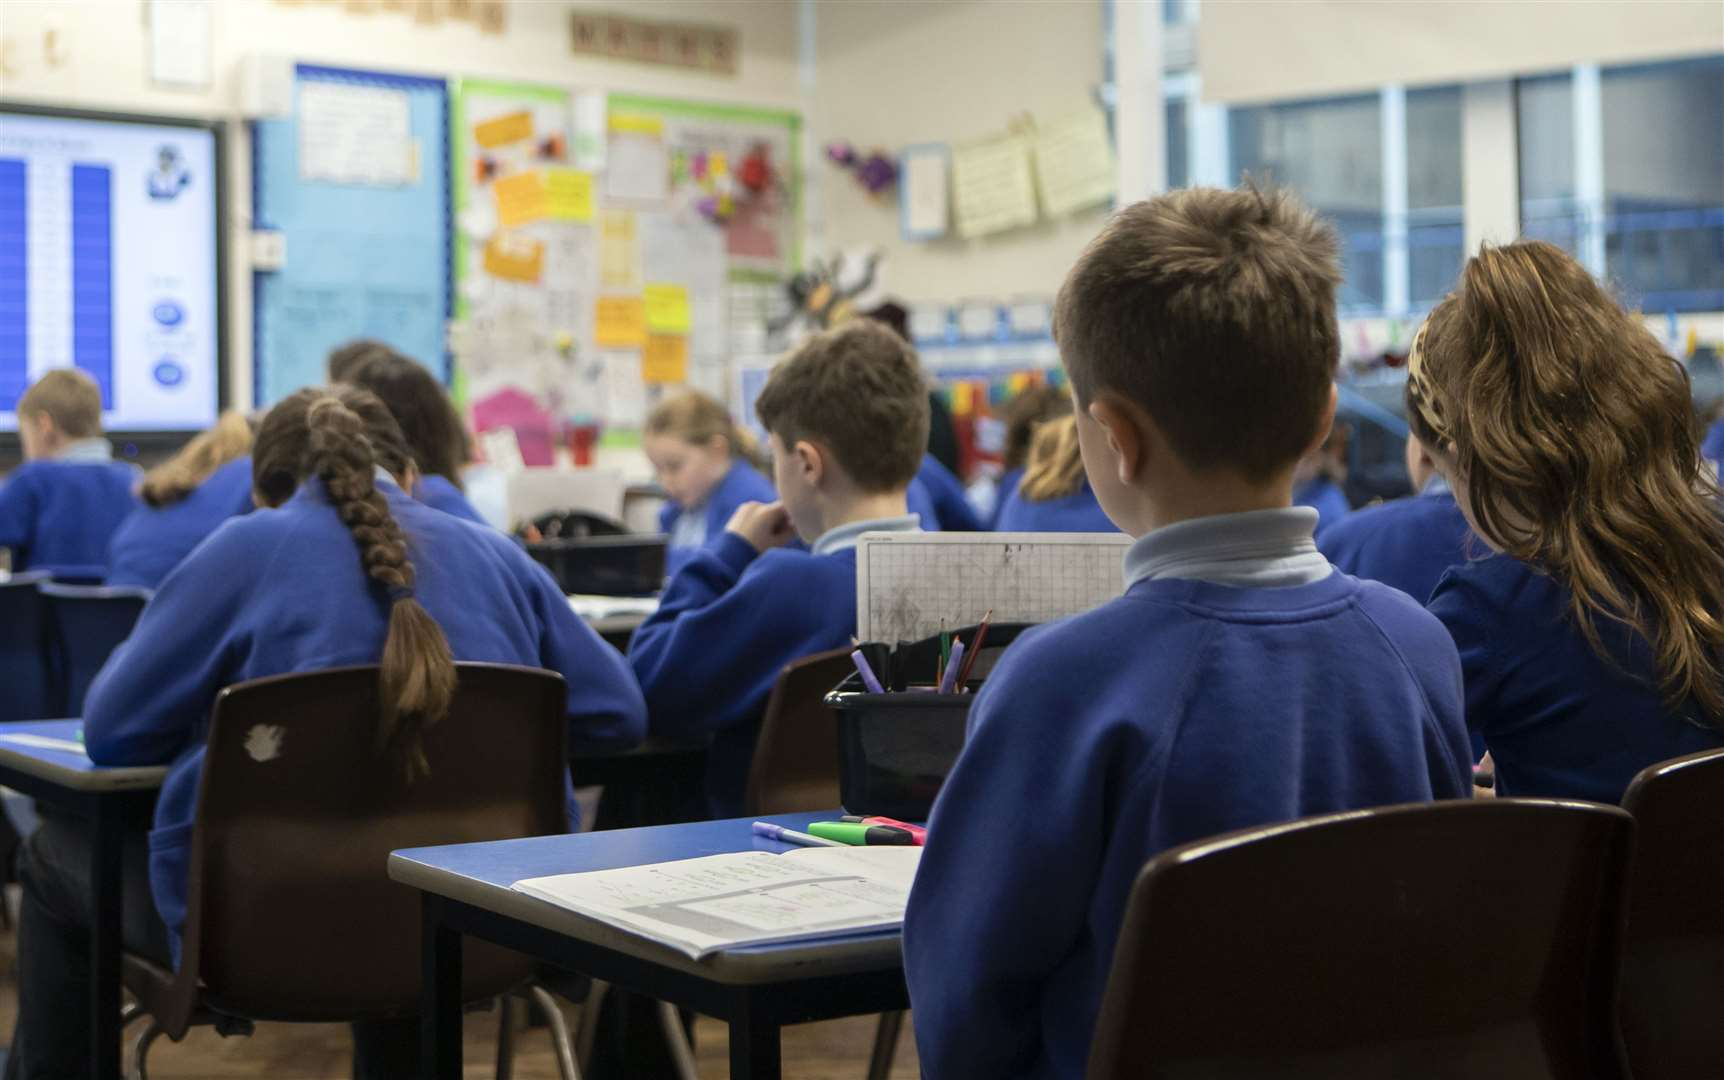 There are fewer concerns about the risks associated with primary schools says Dr Ranj